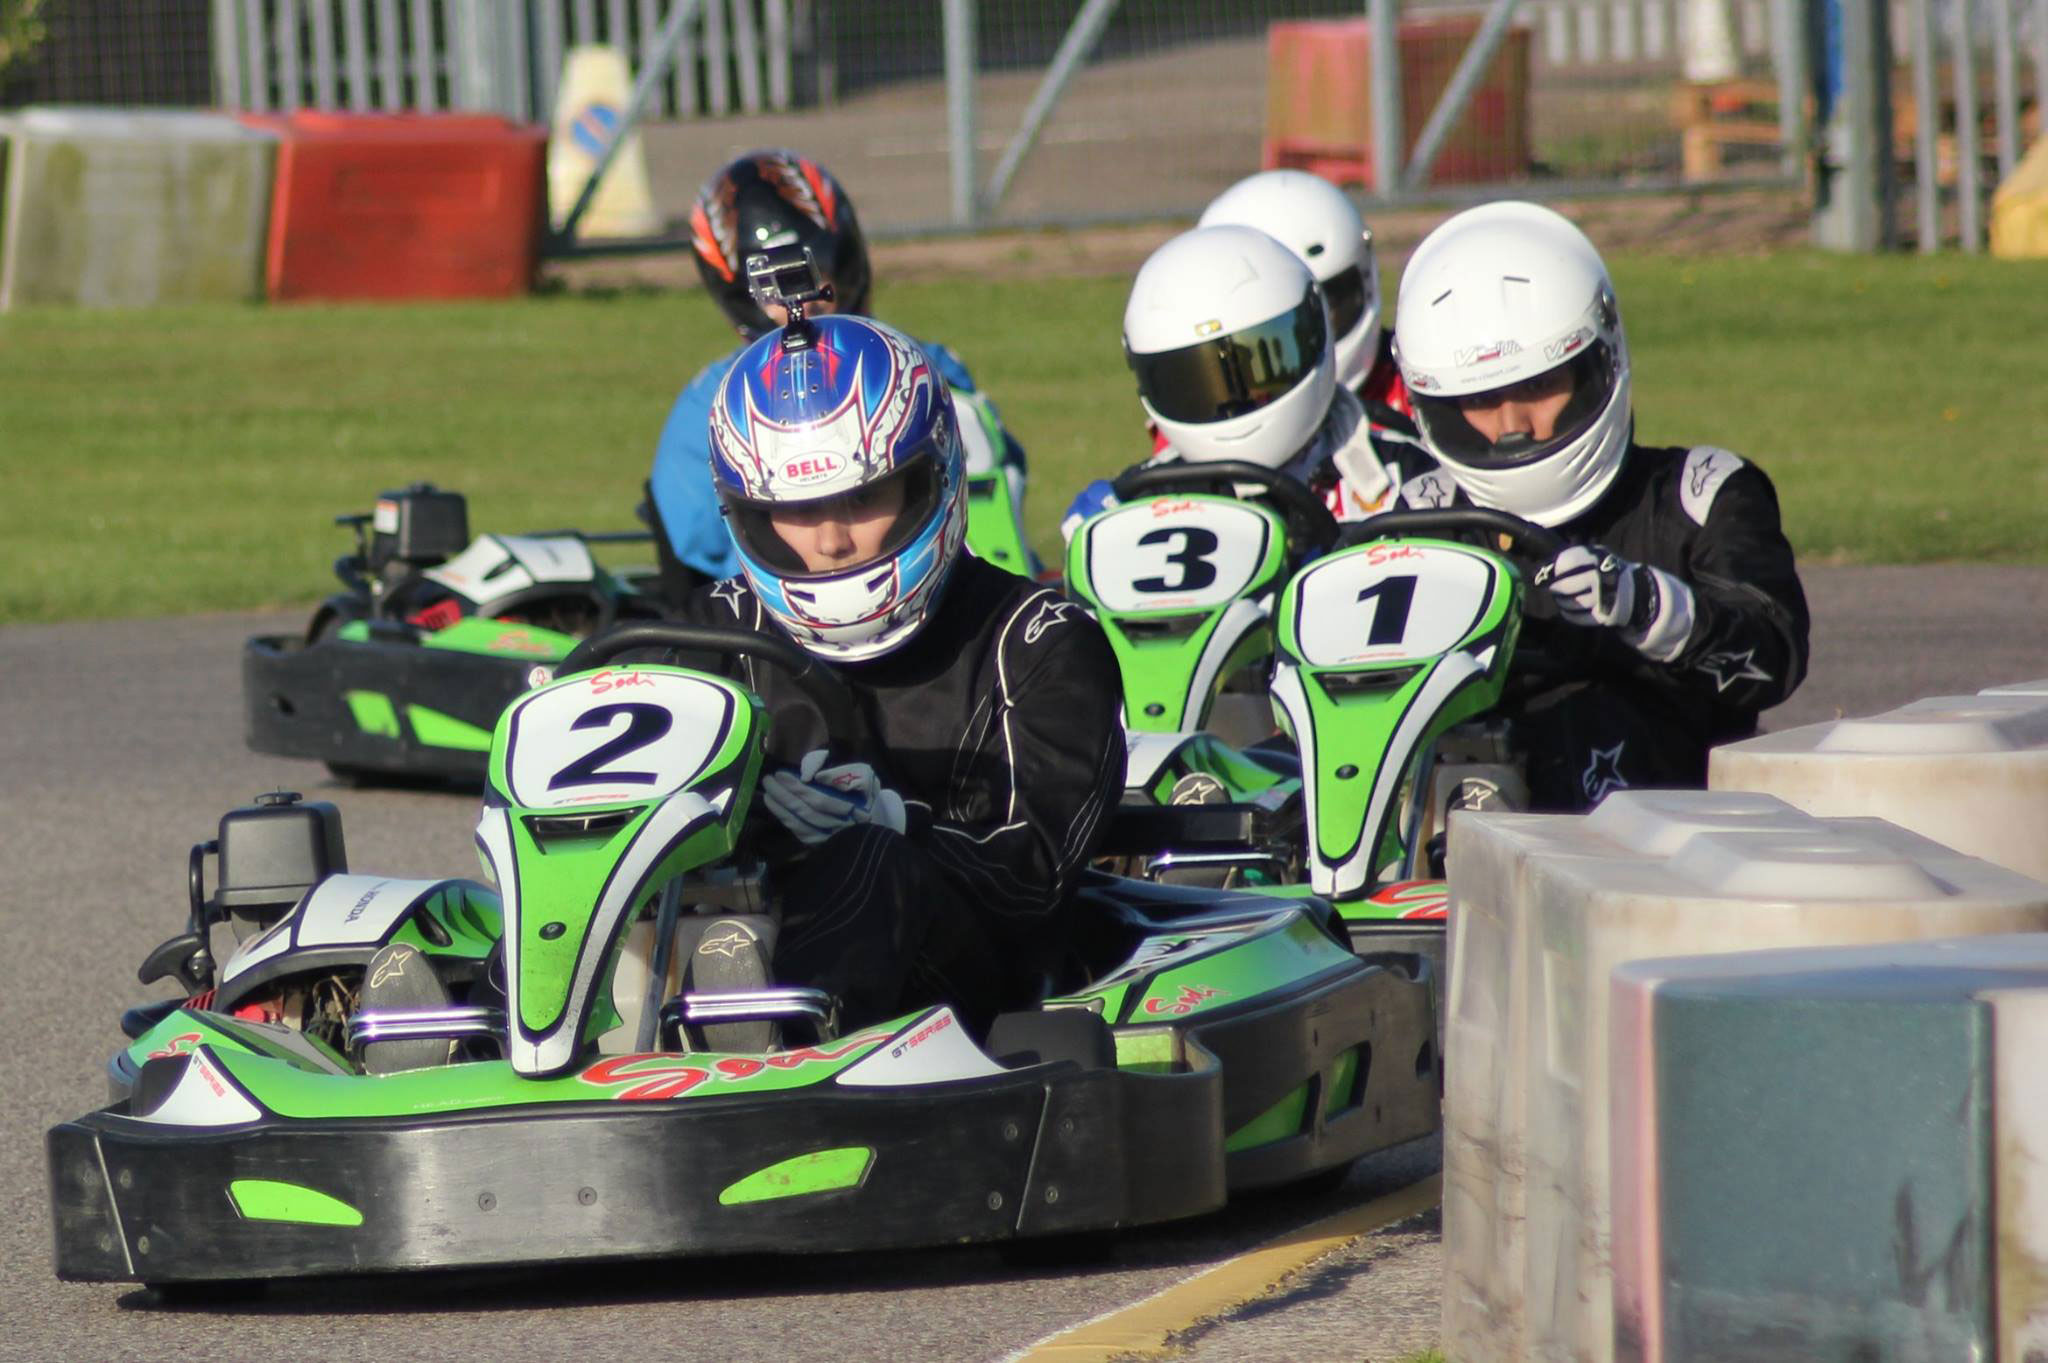 Go Karting Leicester, Leicestershire Team Sport Karting